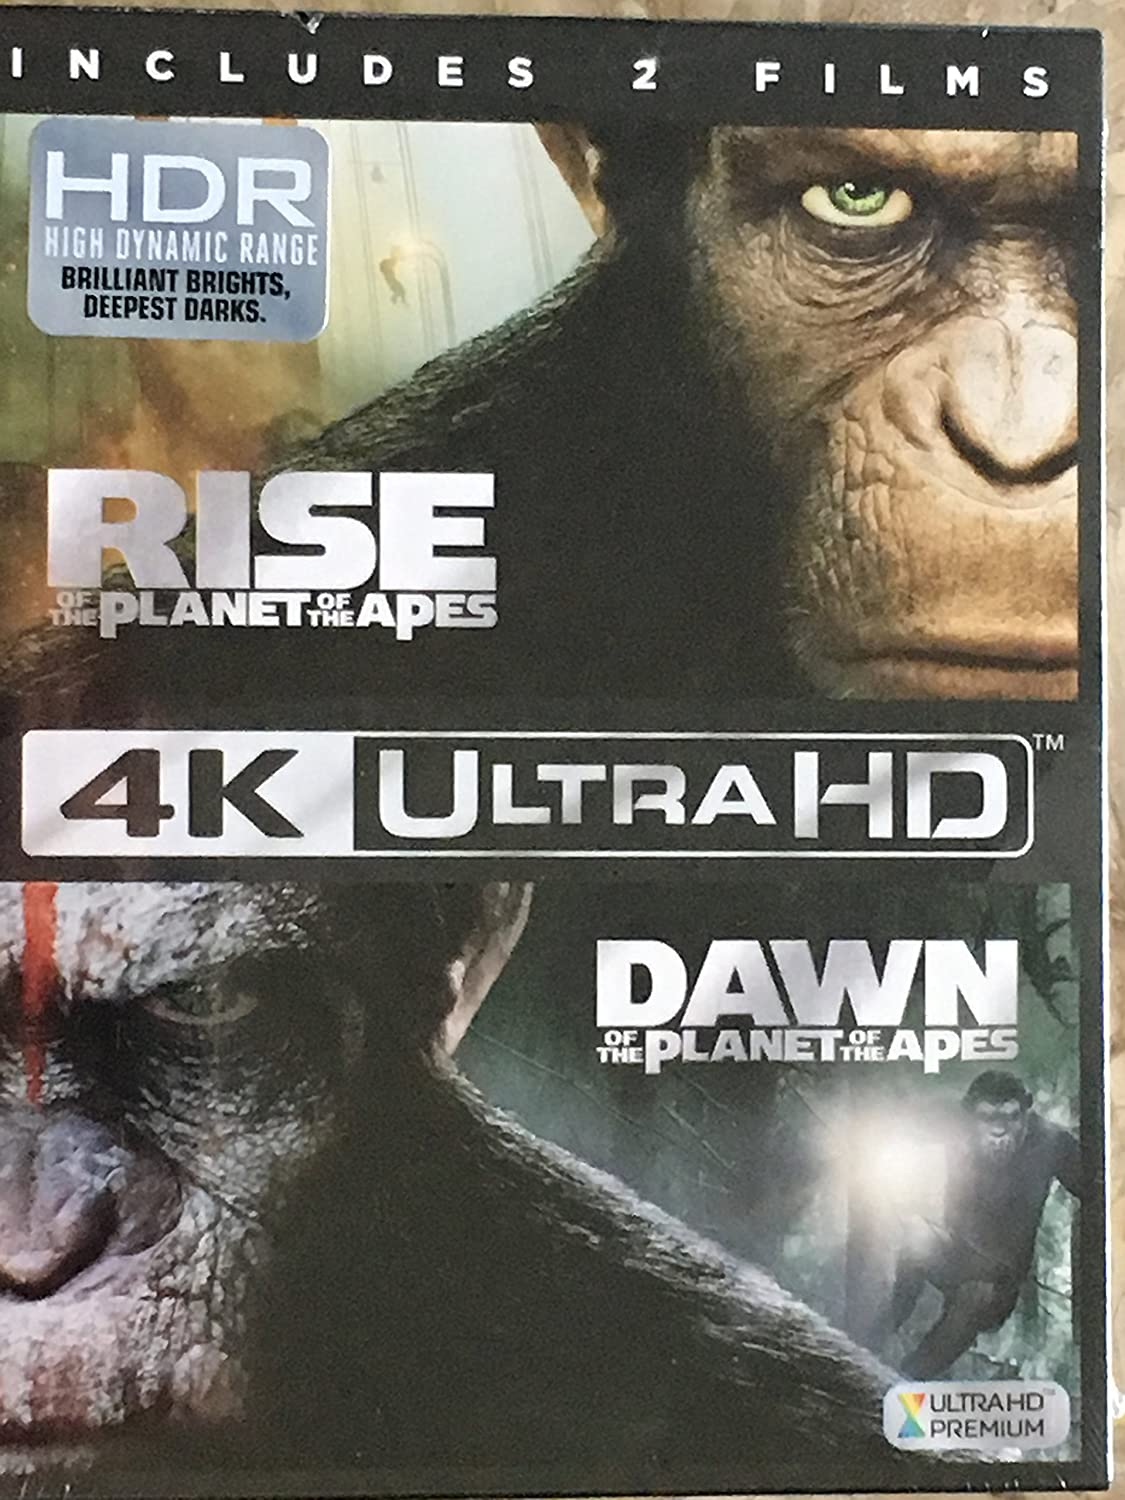 Amazon Com Rise Of The Planet Of The Apes Dawn Of The Planet Of The Apes 4k Ultrahd Blu Ray Digital Hd Movies Tv